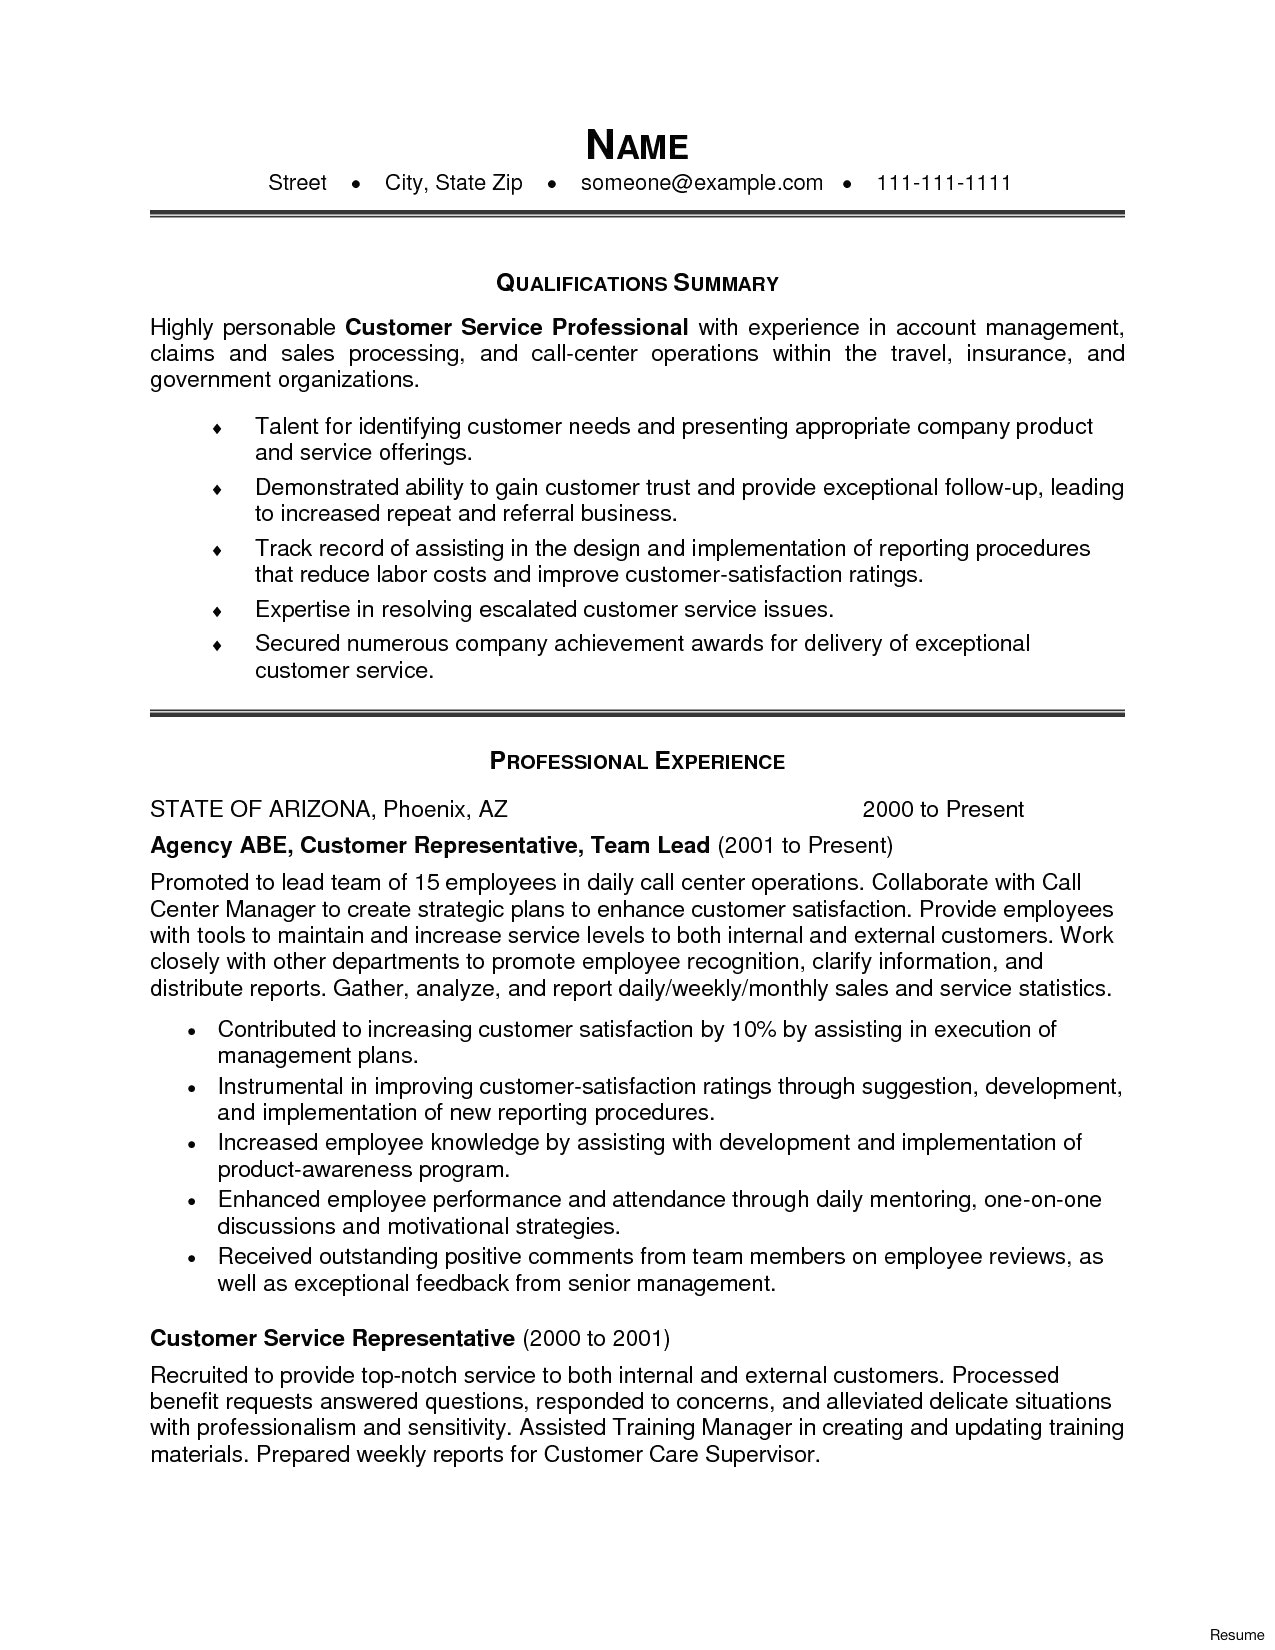 Call Center Job Description for Resume - 35 Best Call Center Resume Skills